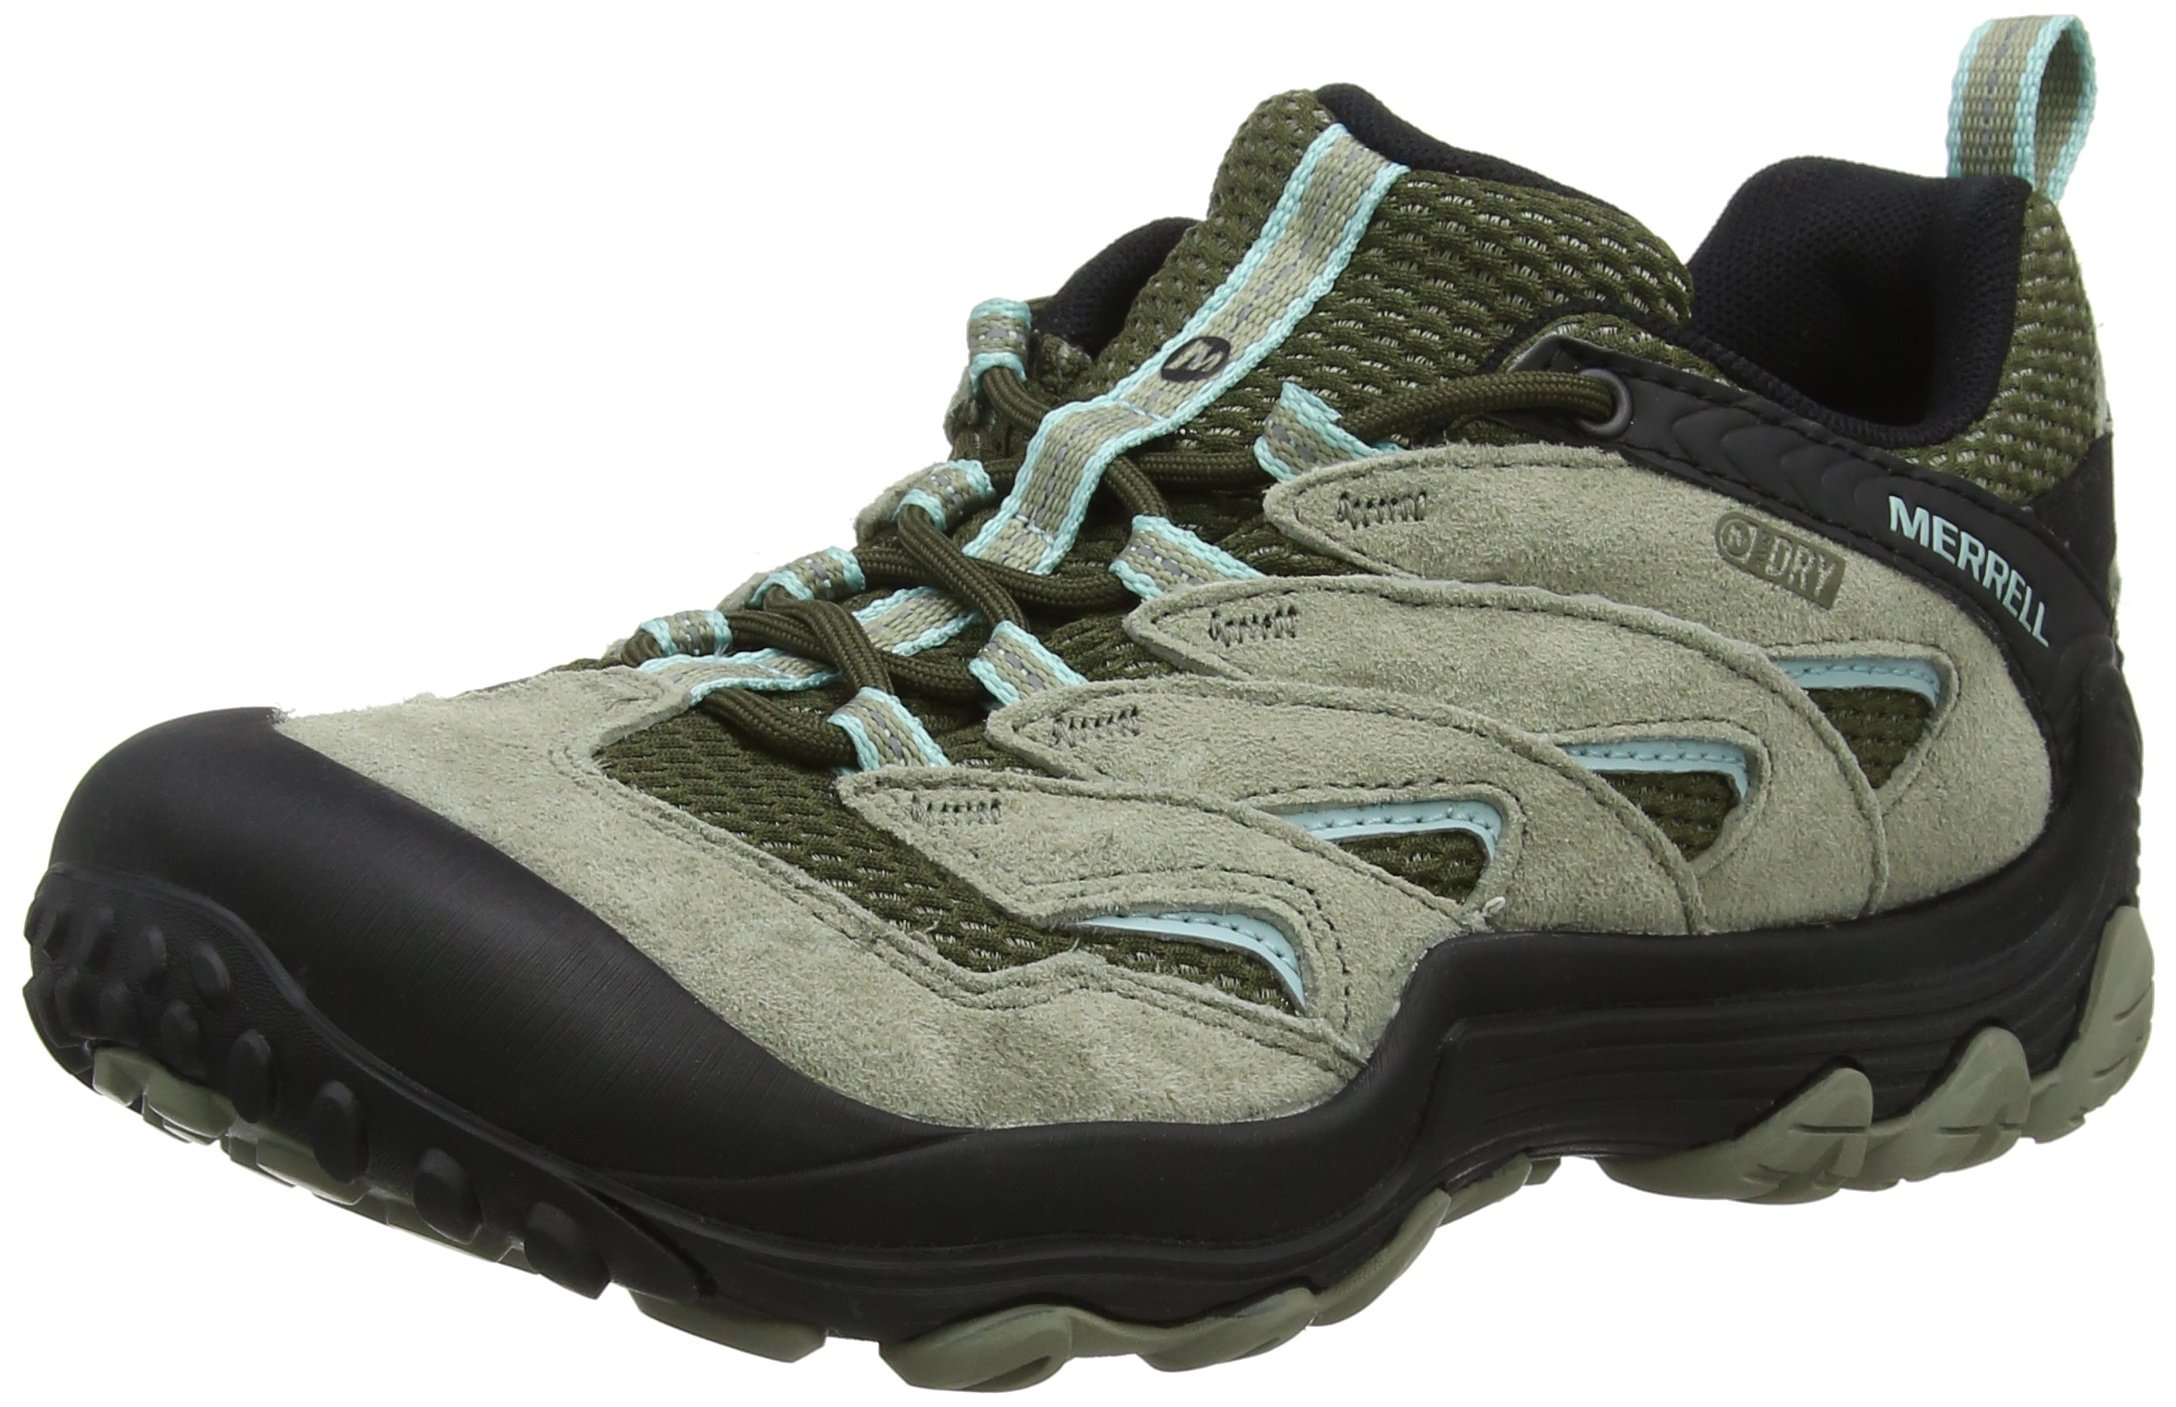 Merrell Women's Chameleon 7 Limit Waterproof Hiking Boot, Dusty Olive, 7 Medium US